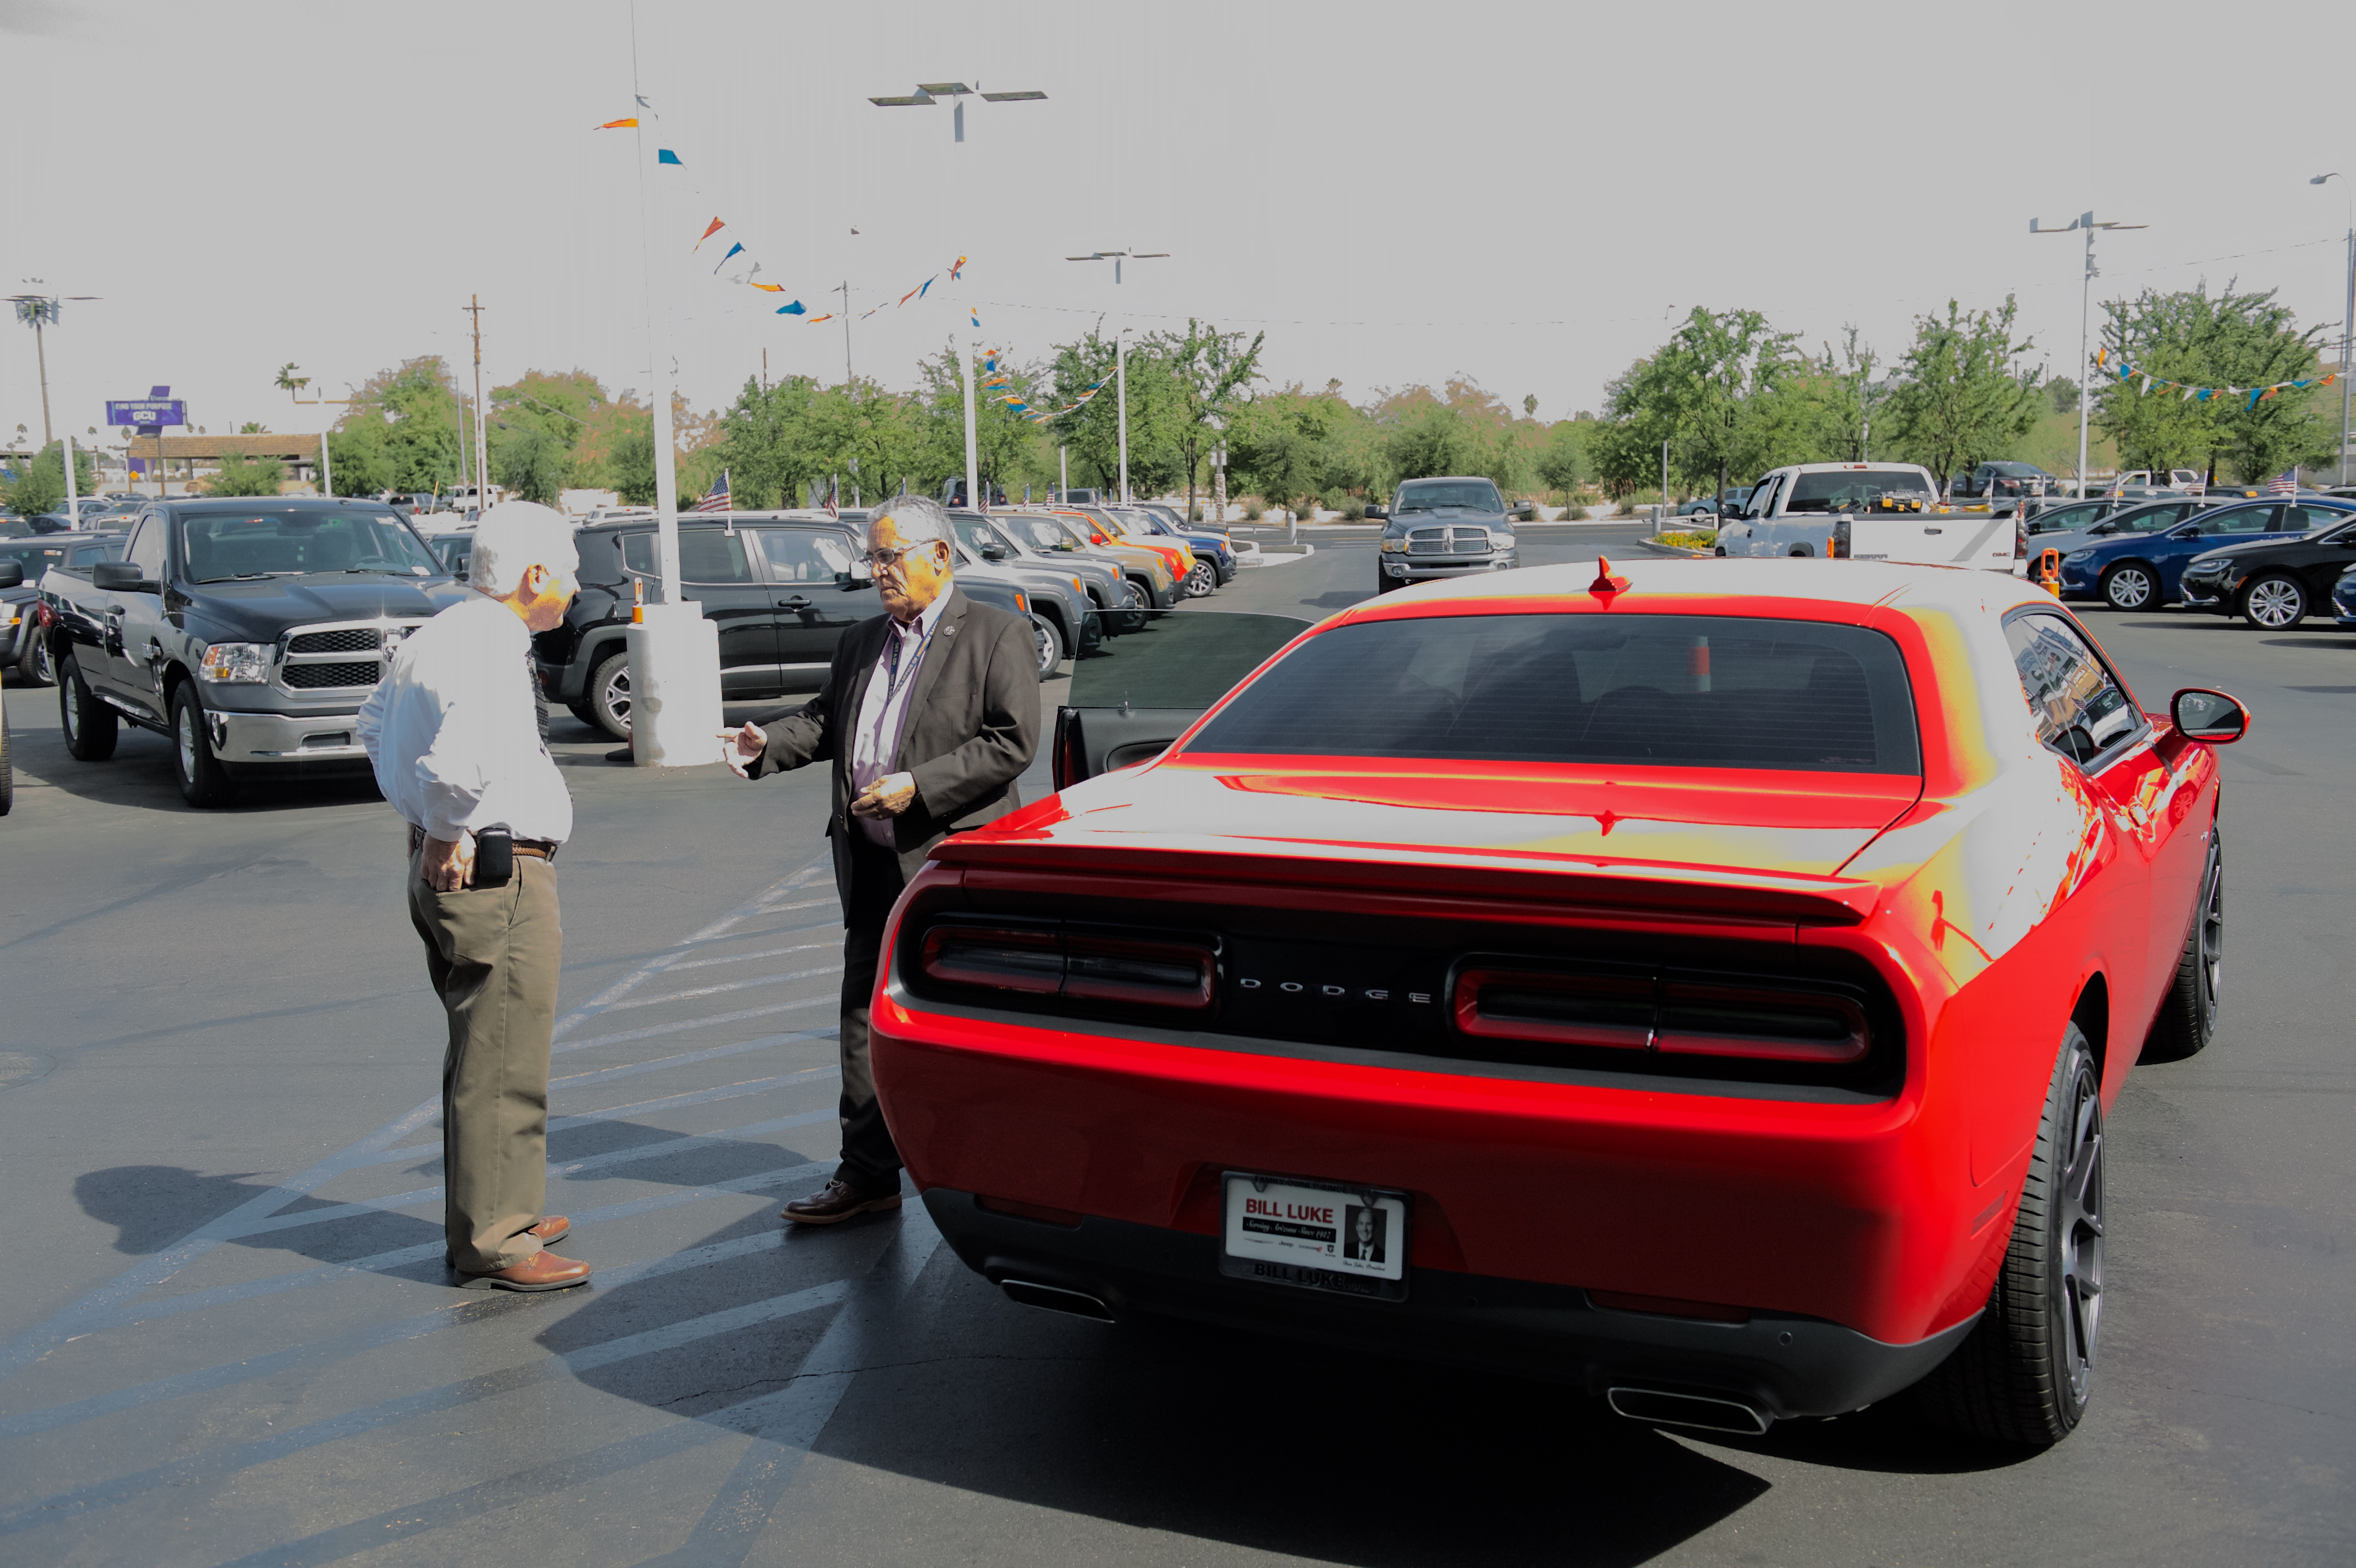 Stealthy Challenger and Mustang Vehicles To Join ADPS Patrol Fleet